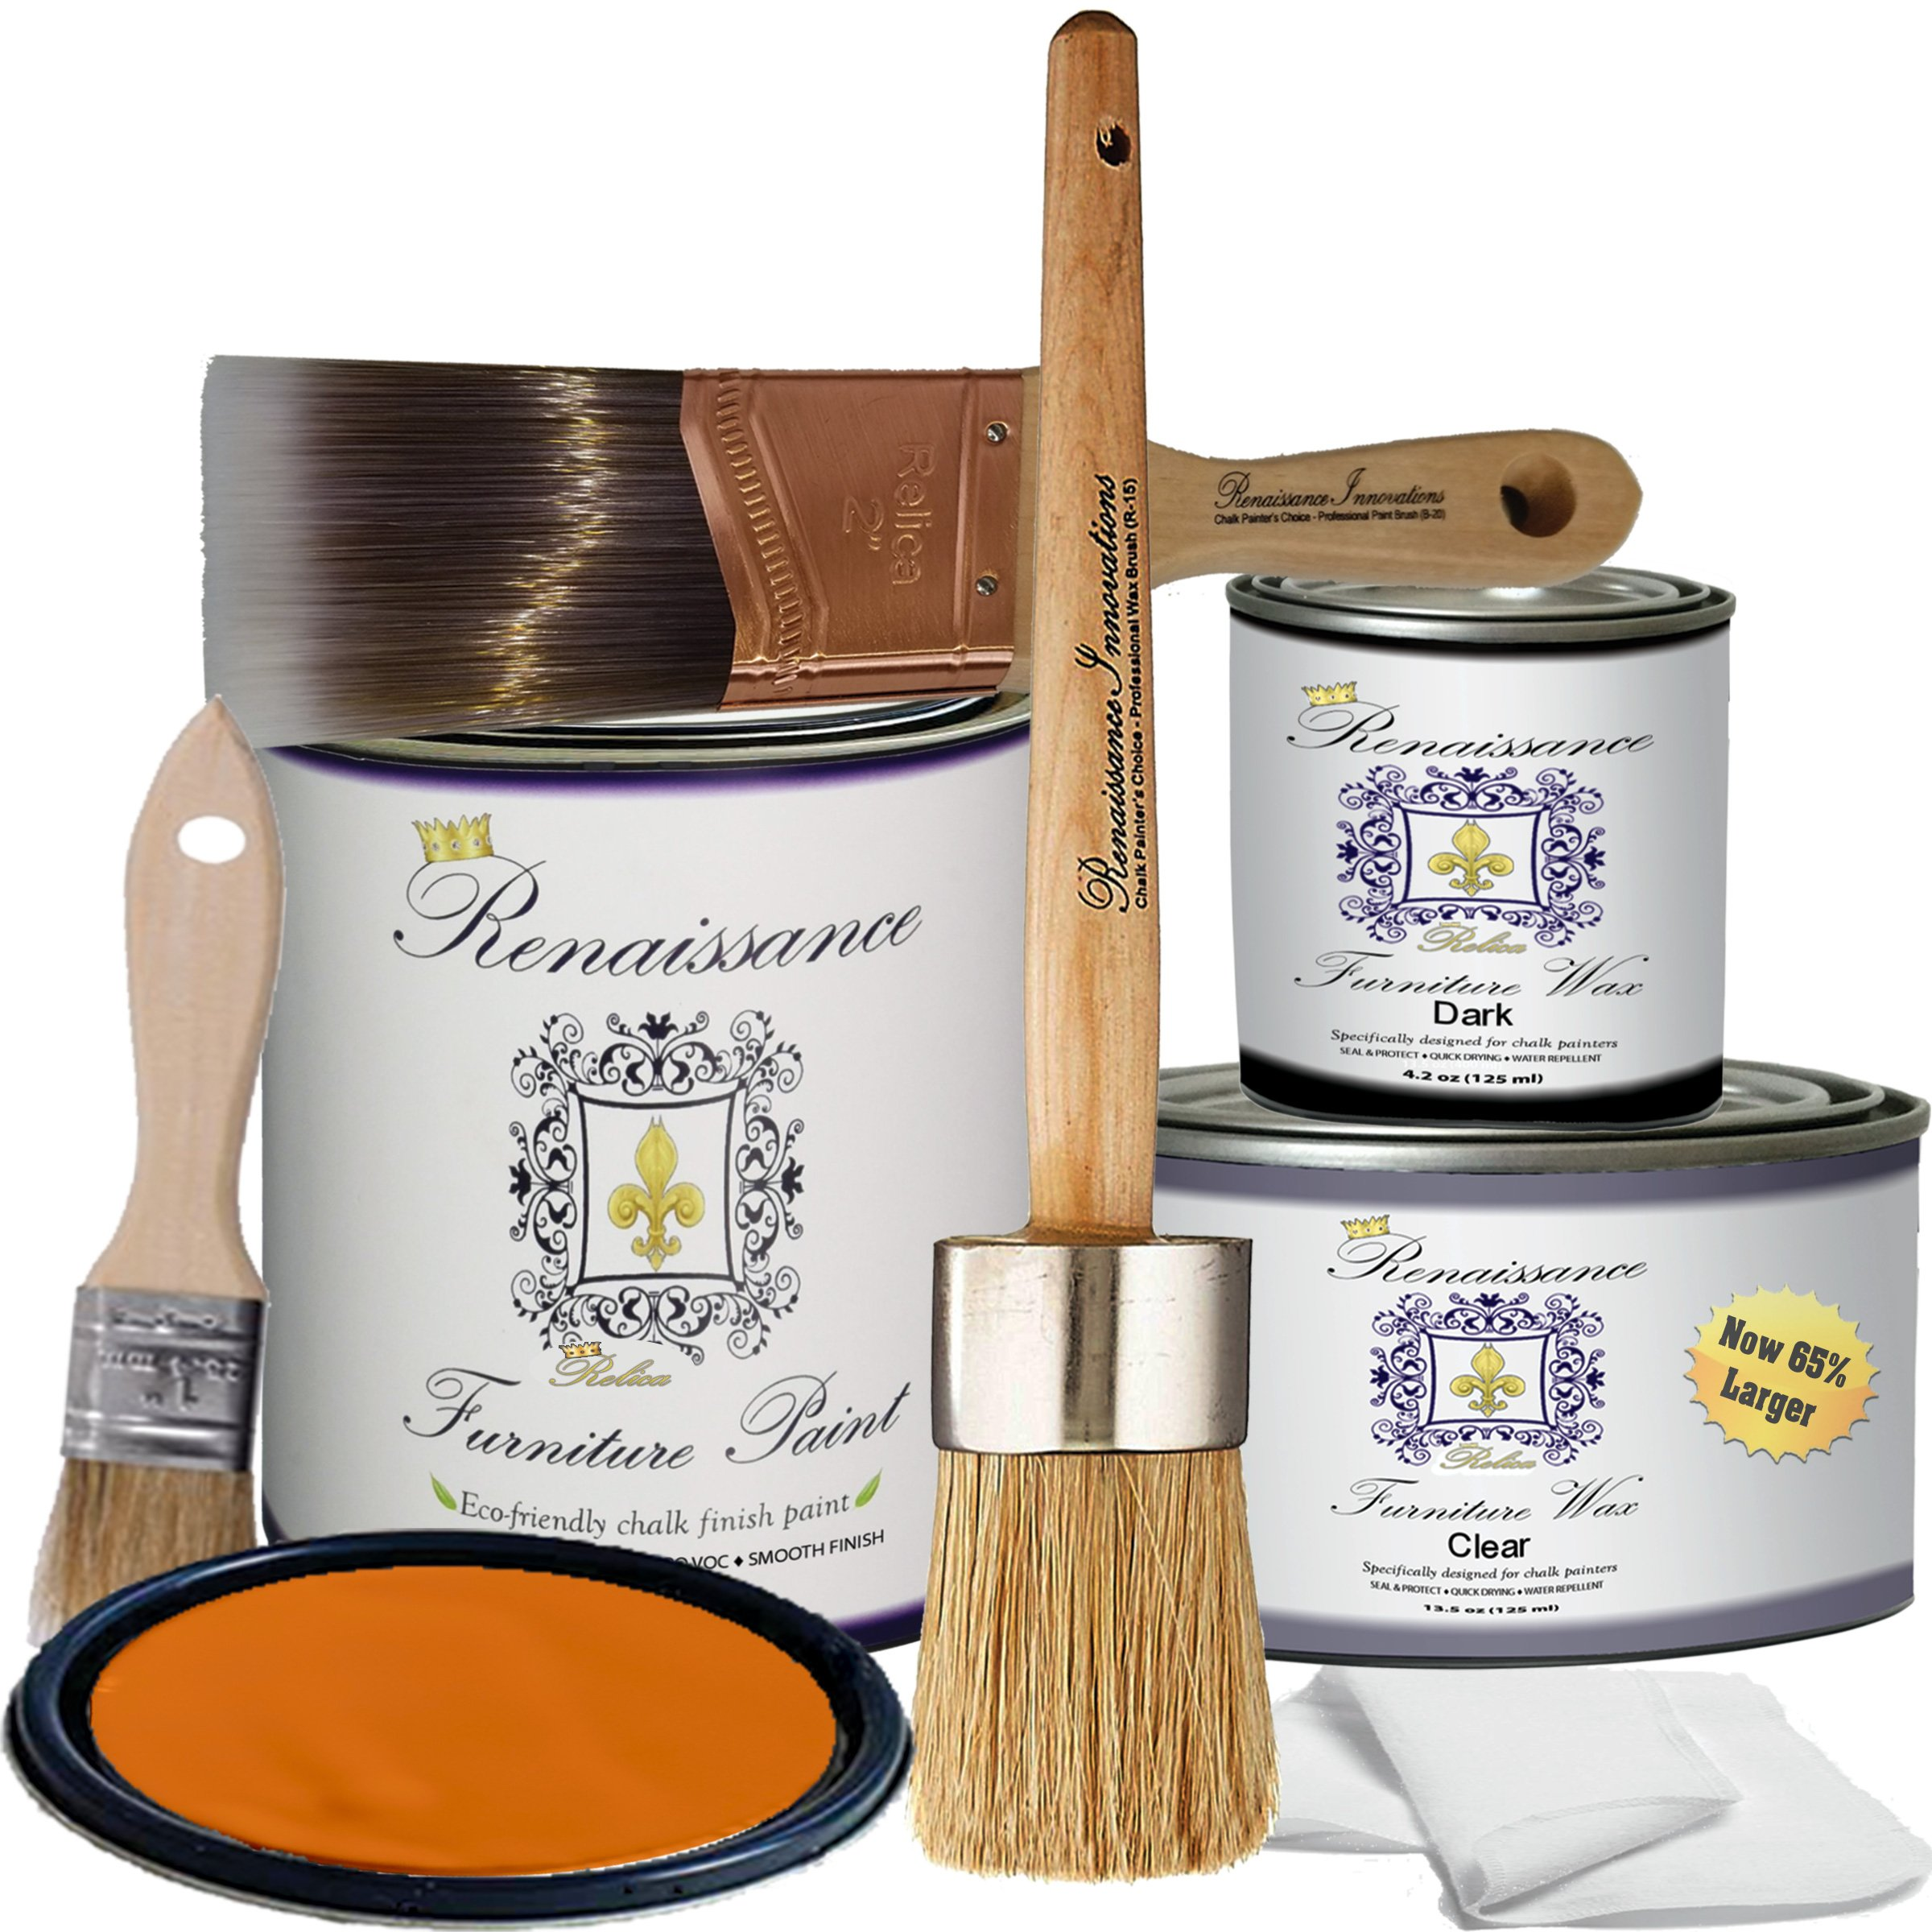 Renaissance Chalk Finish Paint - Marigold - Deluxe Starter Kit - Chalk Furniture & Cabinet Paint - Non Toxic, Eco-Friendly, Superior Coverage